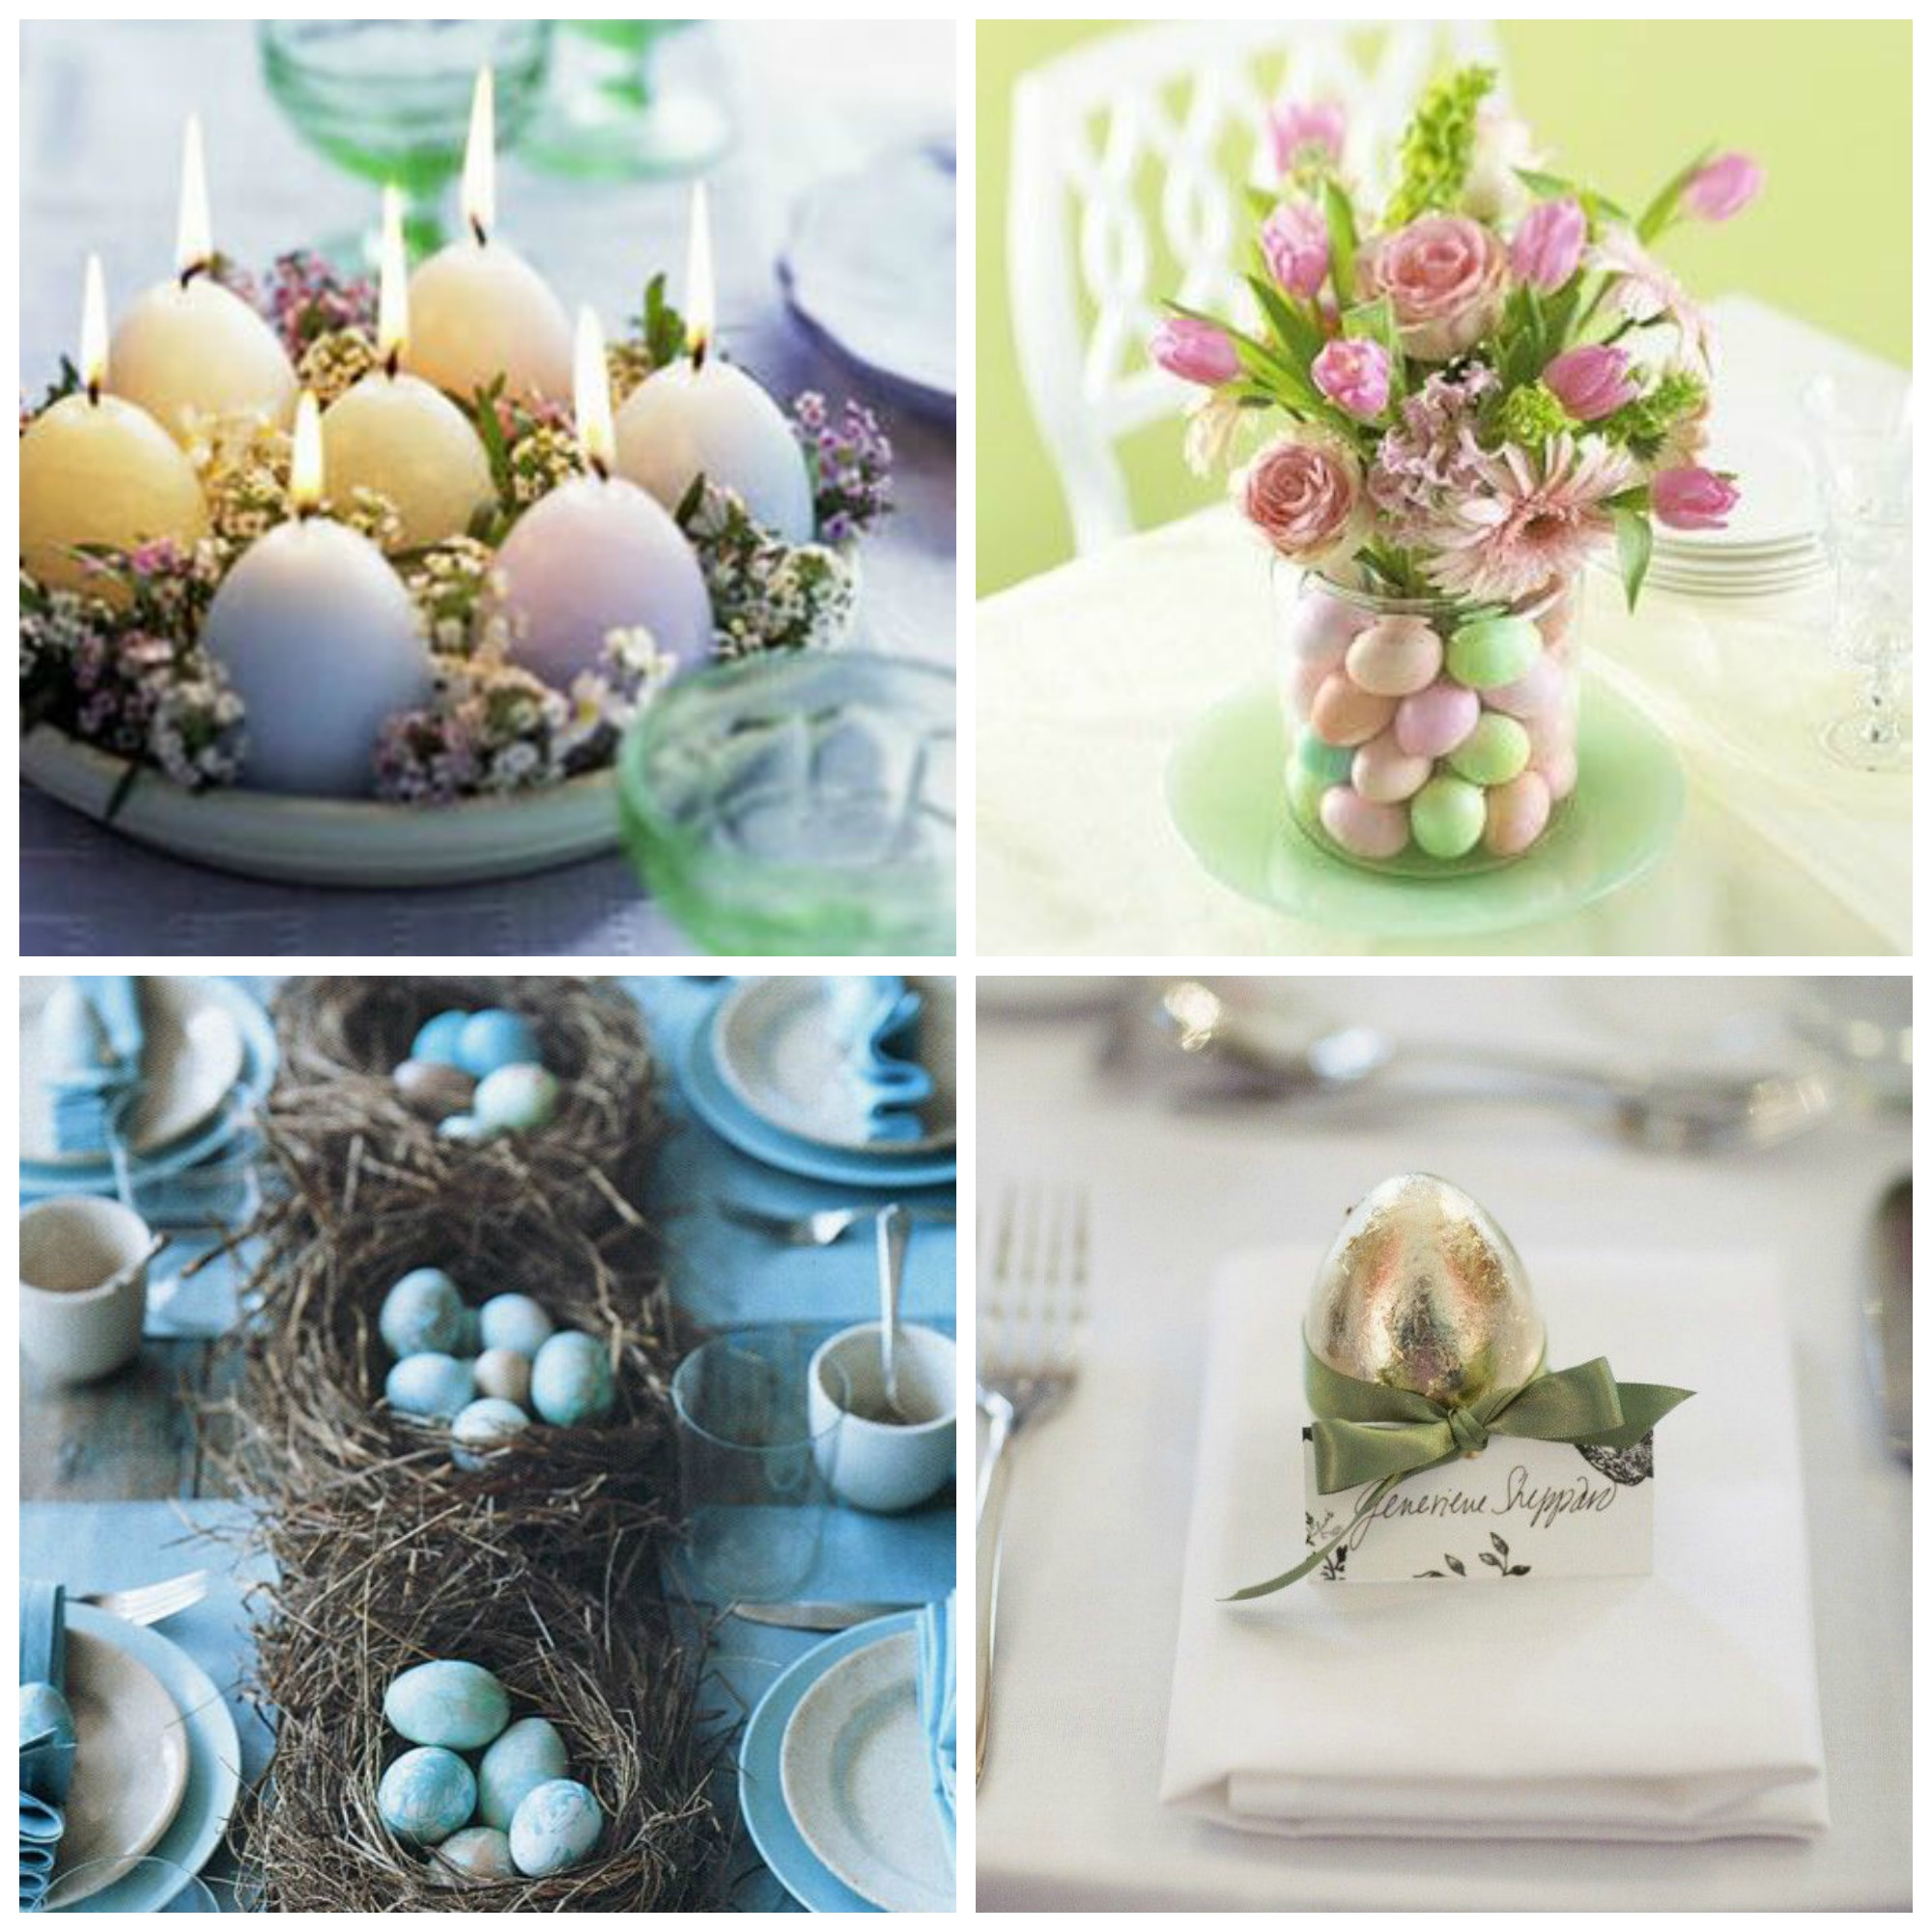 Easter Flowers Wedding: Easter Weddings Can Be Egg-ceptional